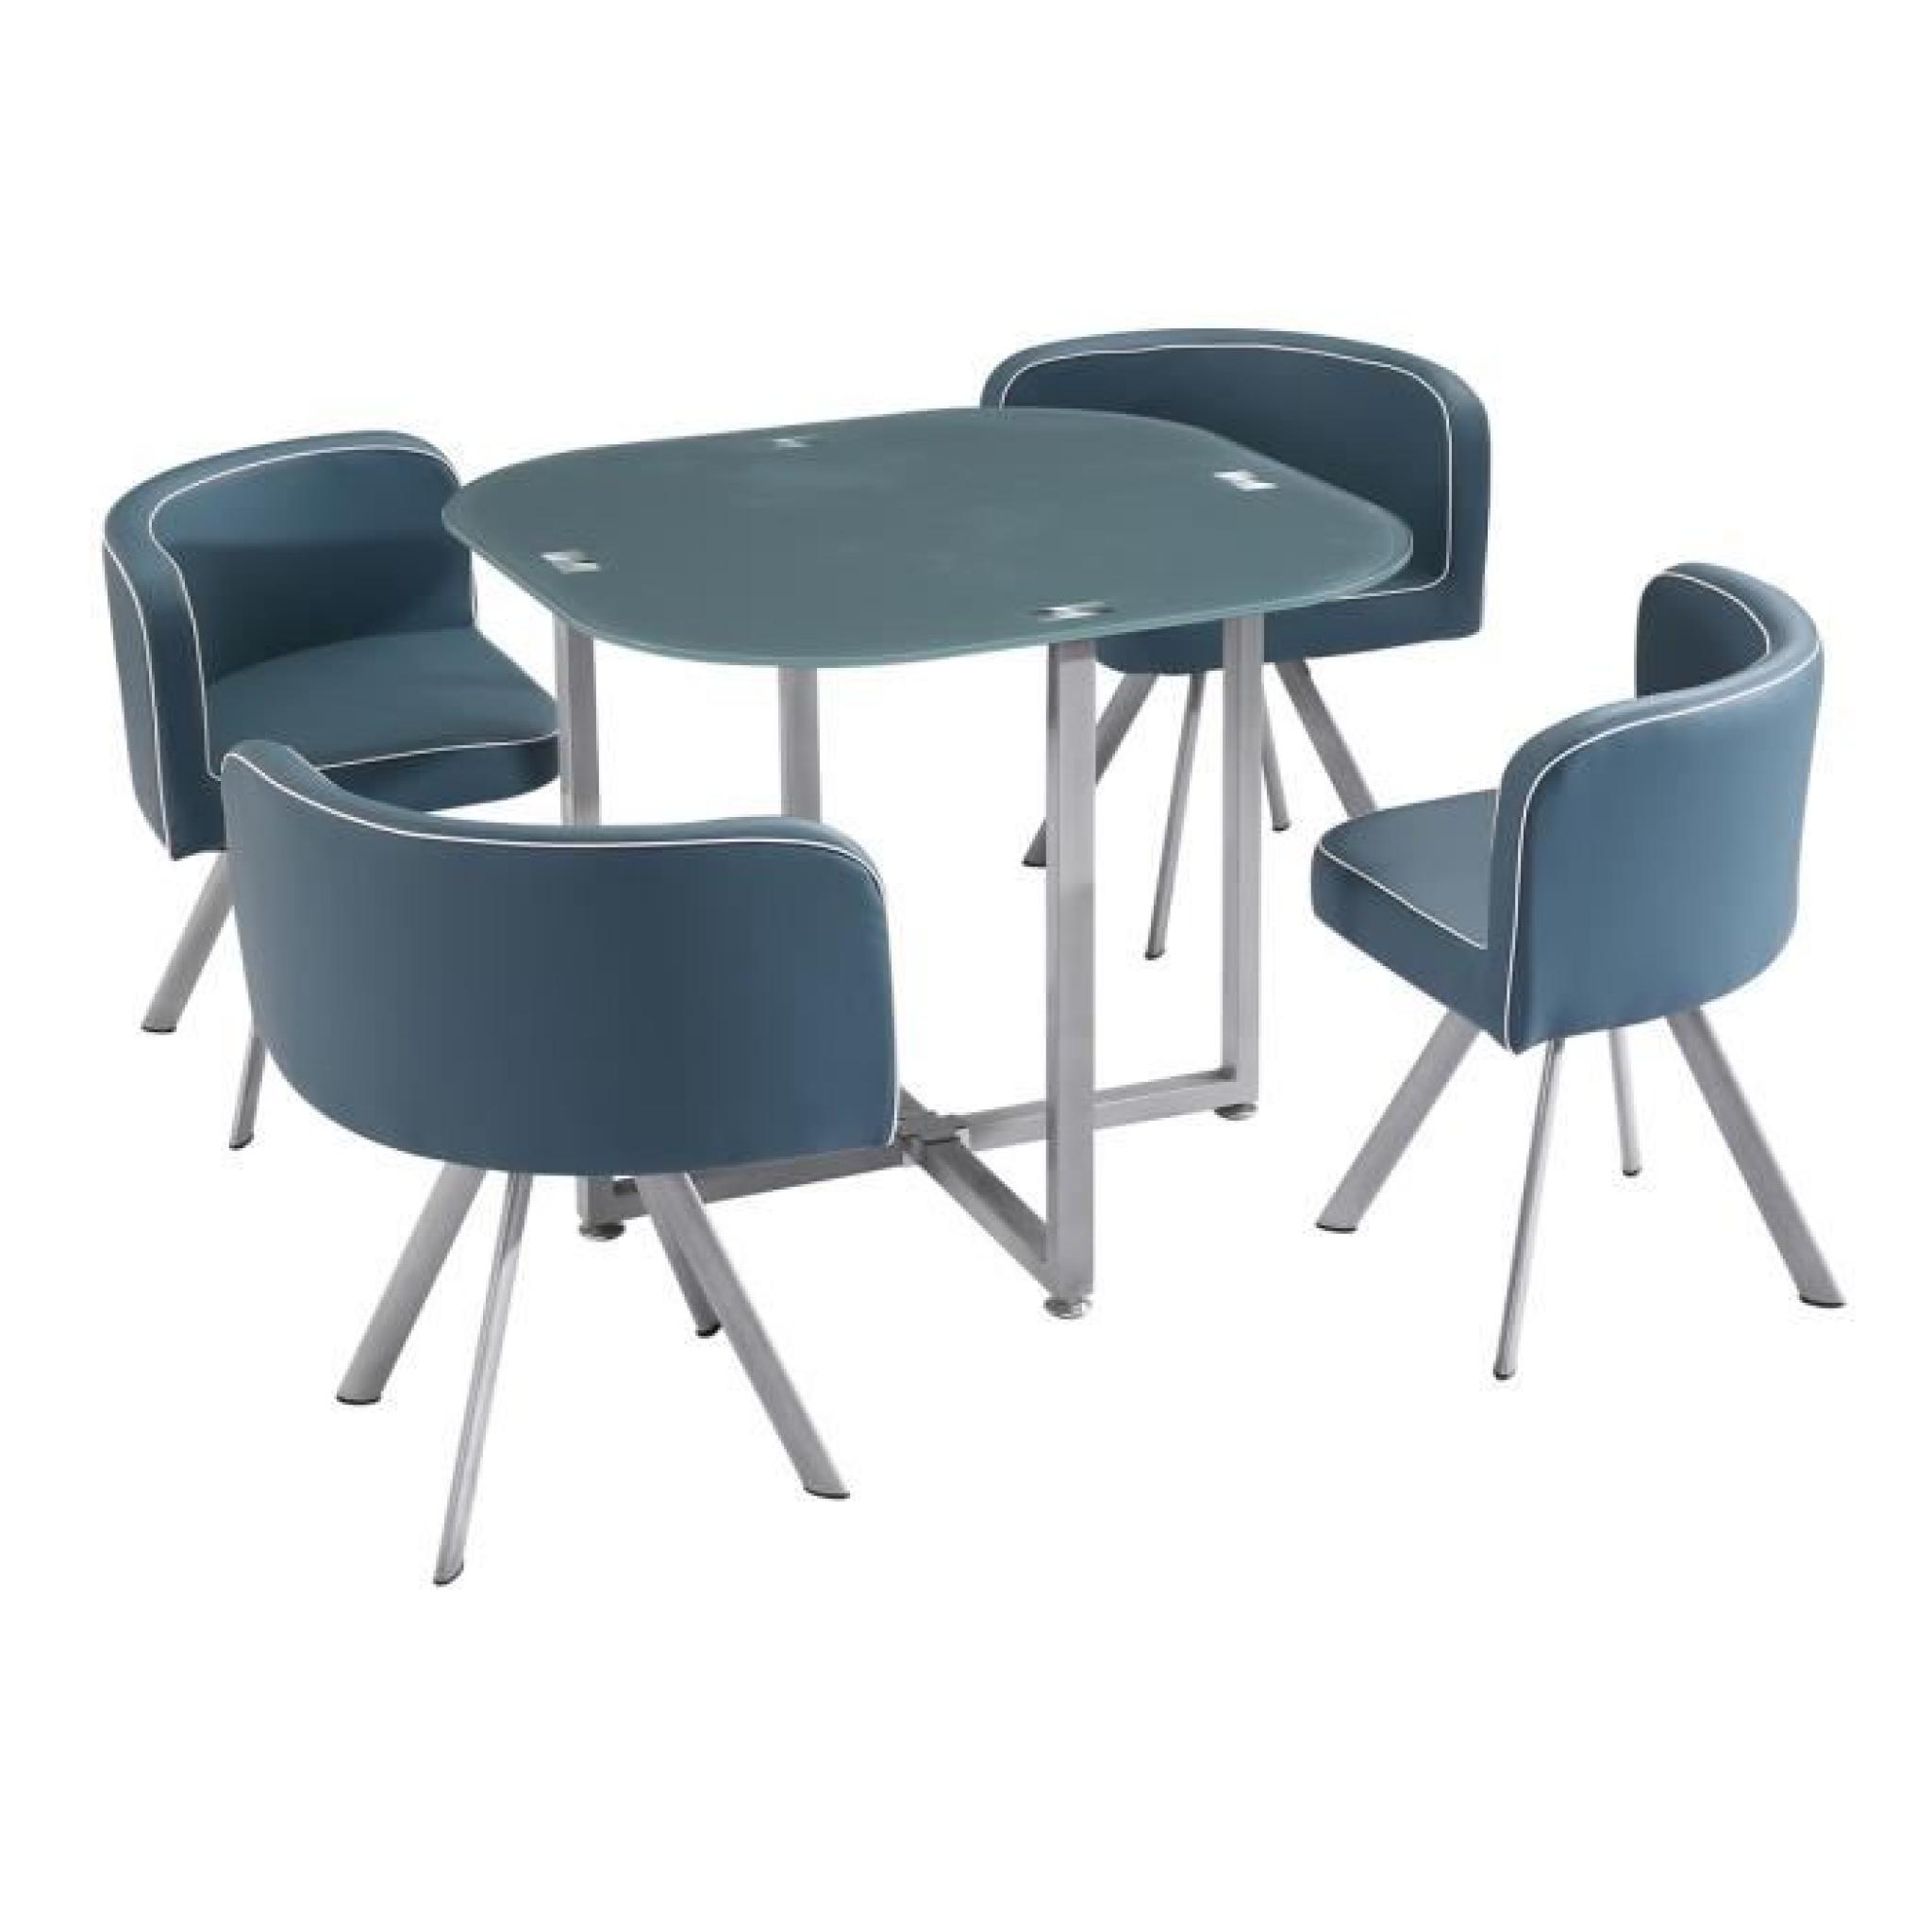 Ensemble table a manger et chaise pas cher maison design - Table chaise pas cher ...